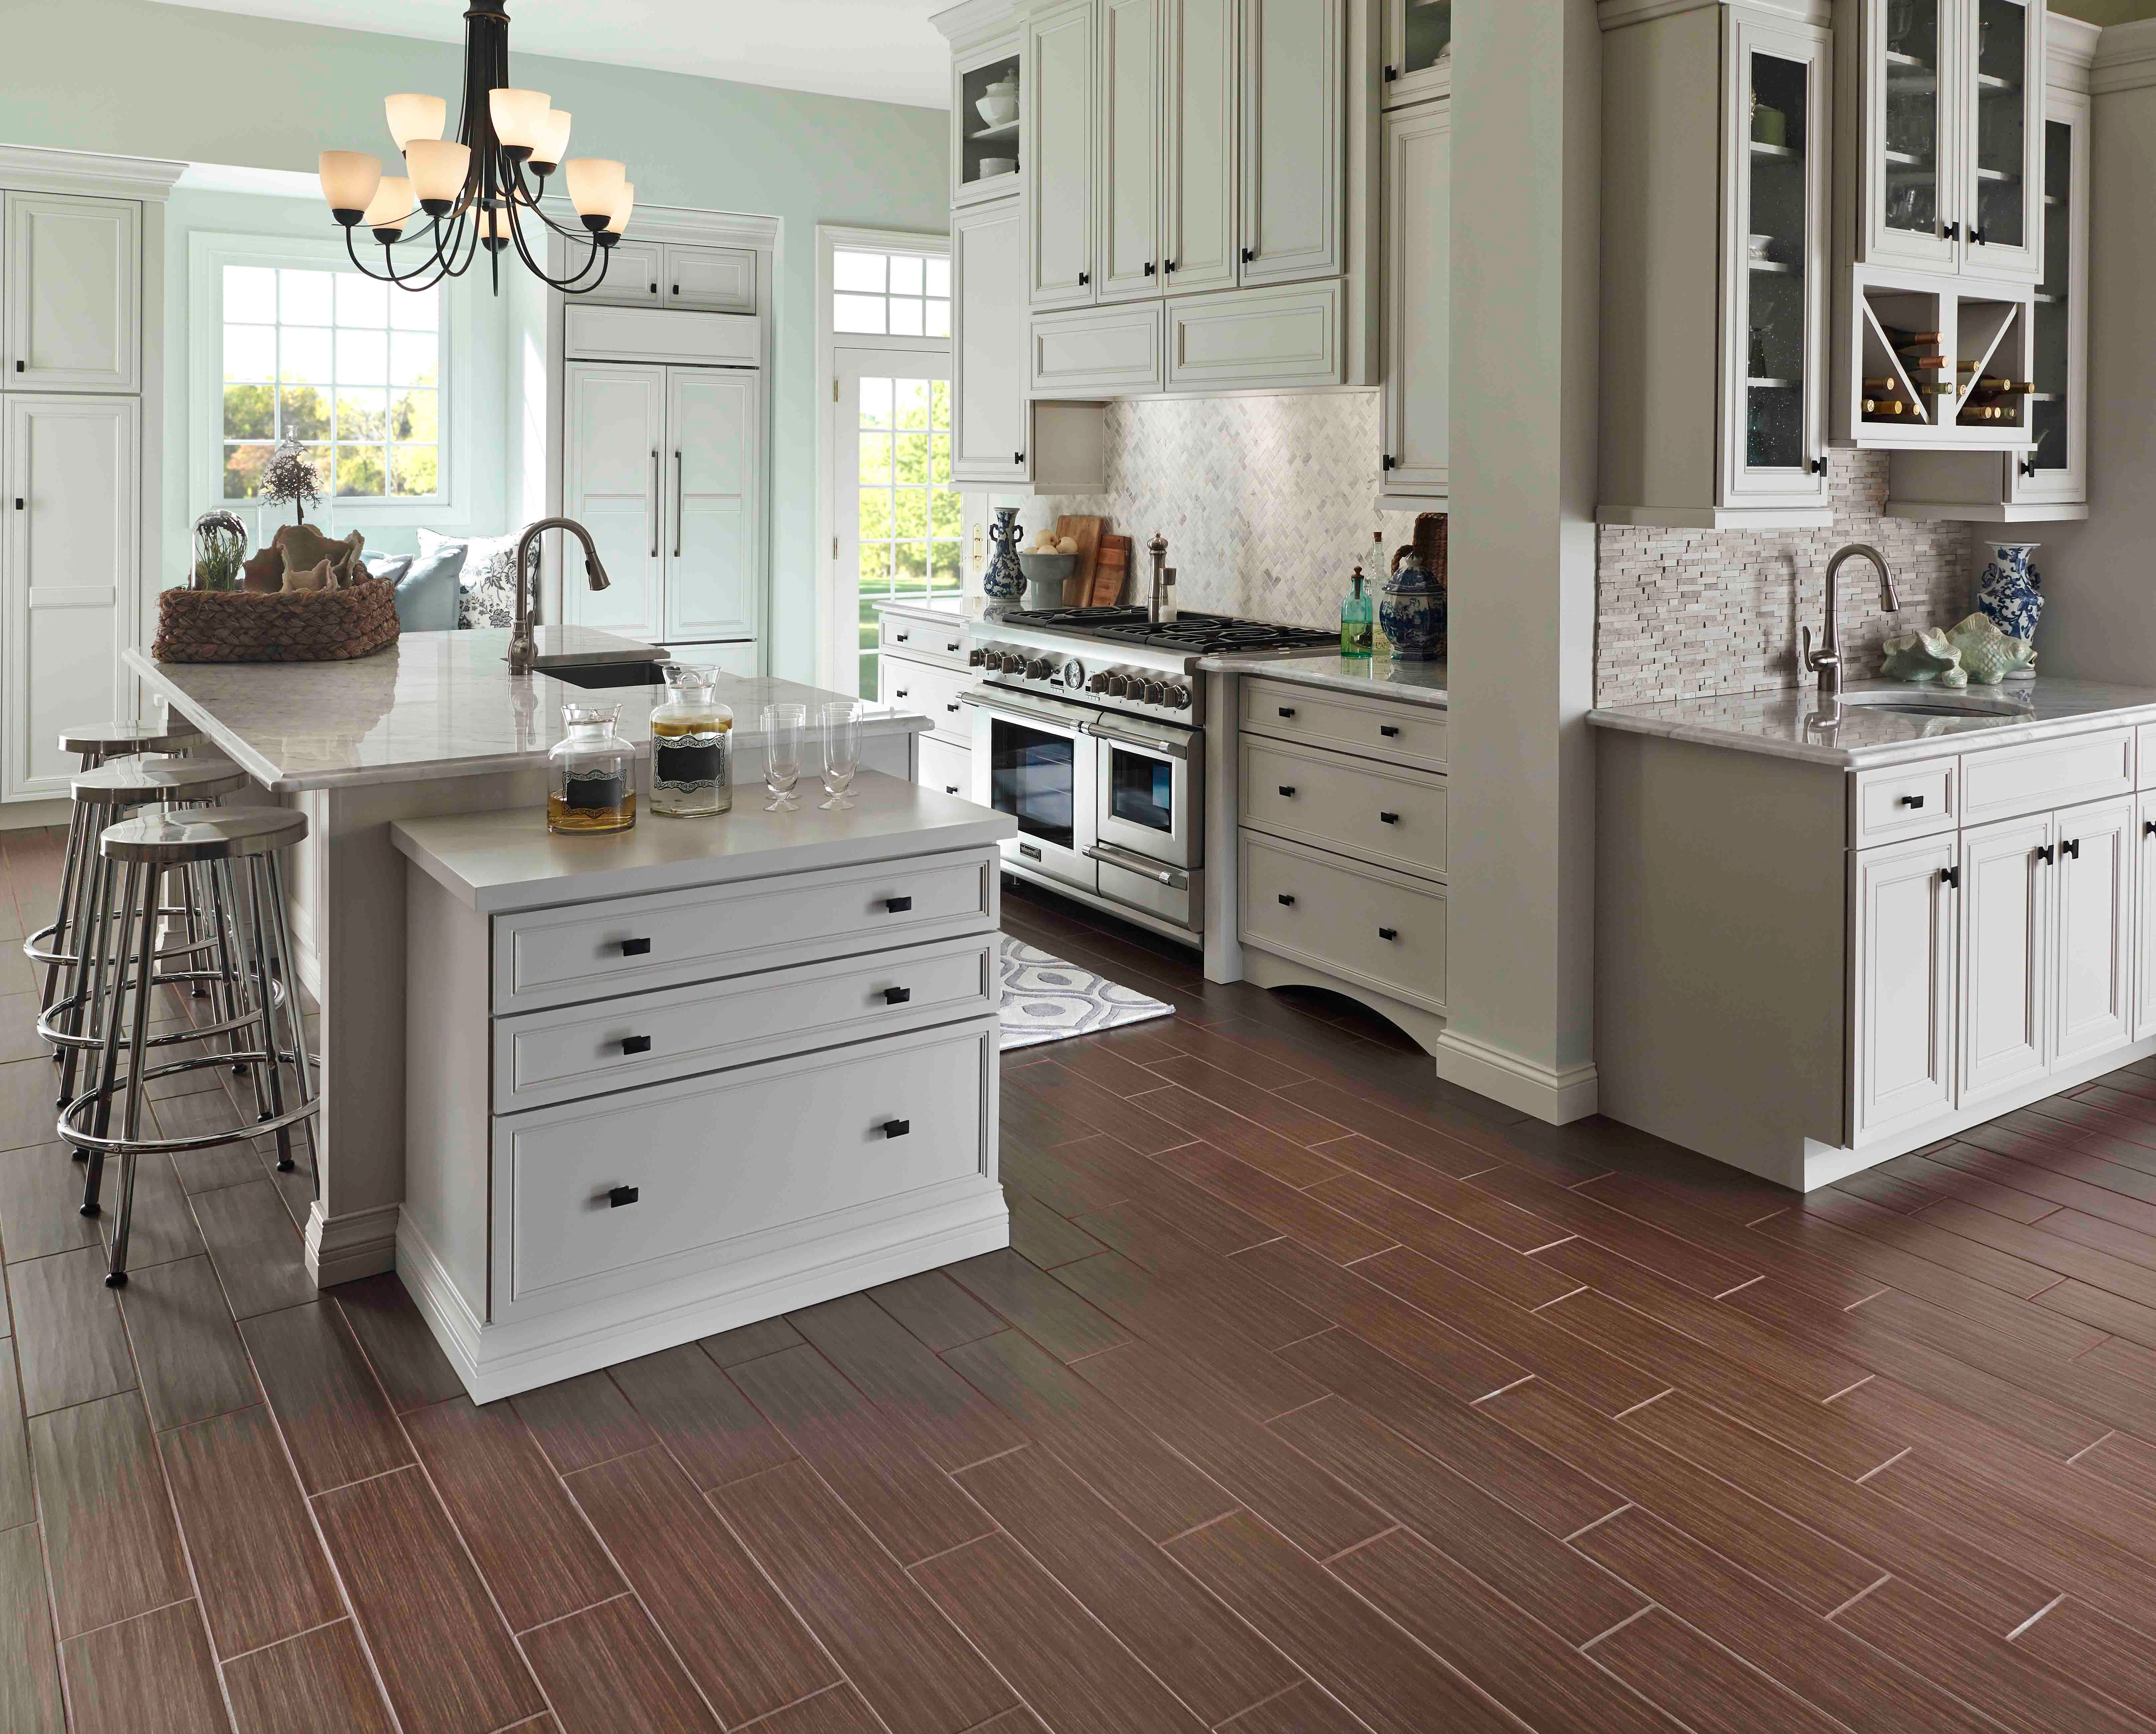 Most popular granite countertop colors 2015 - 2015 Hot Kitchen Trends Part 1 Cabinets